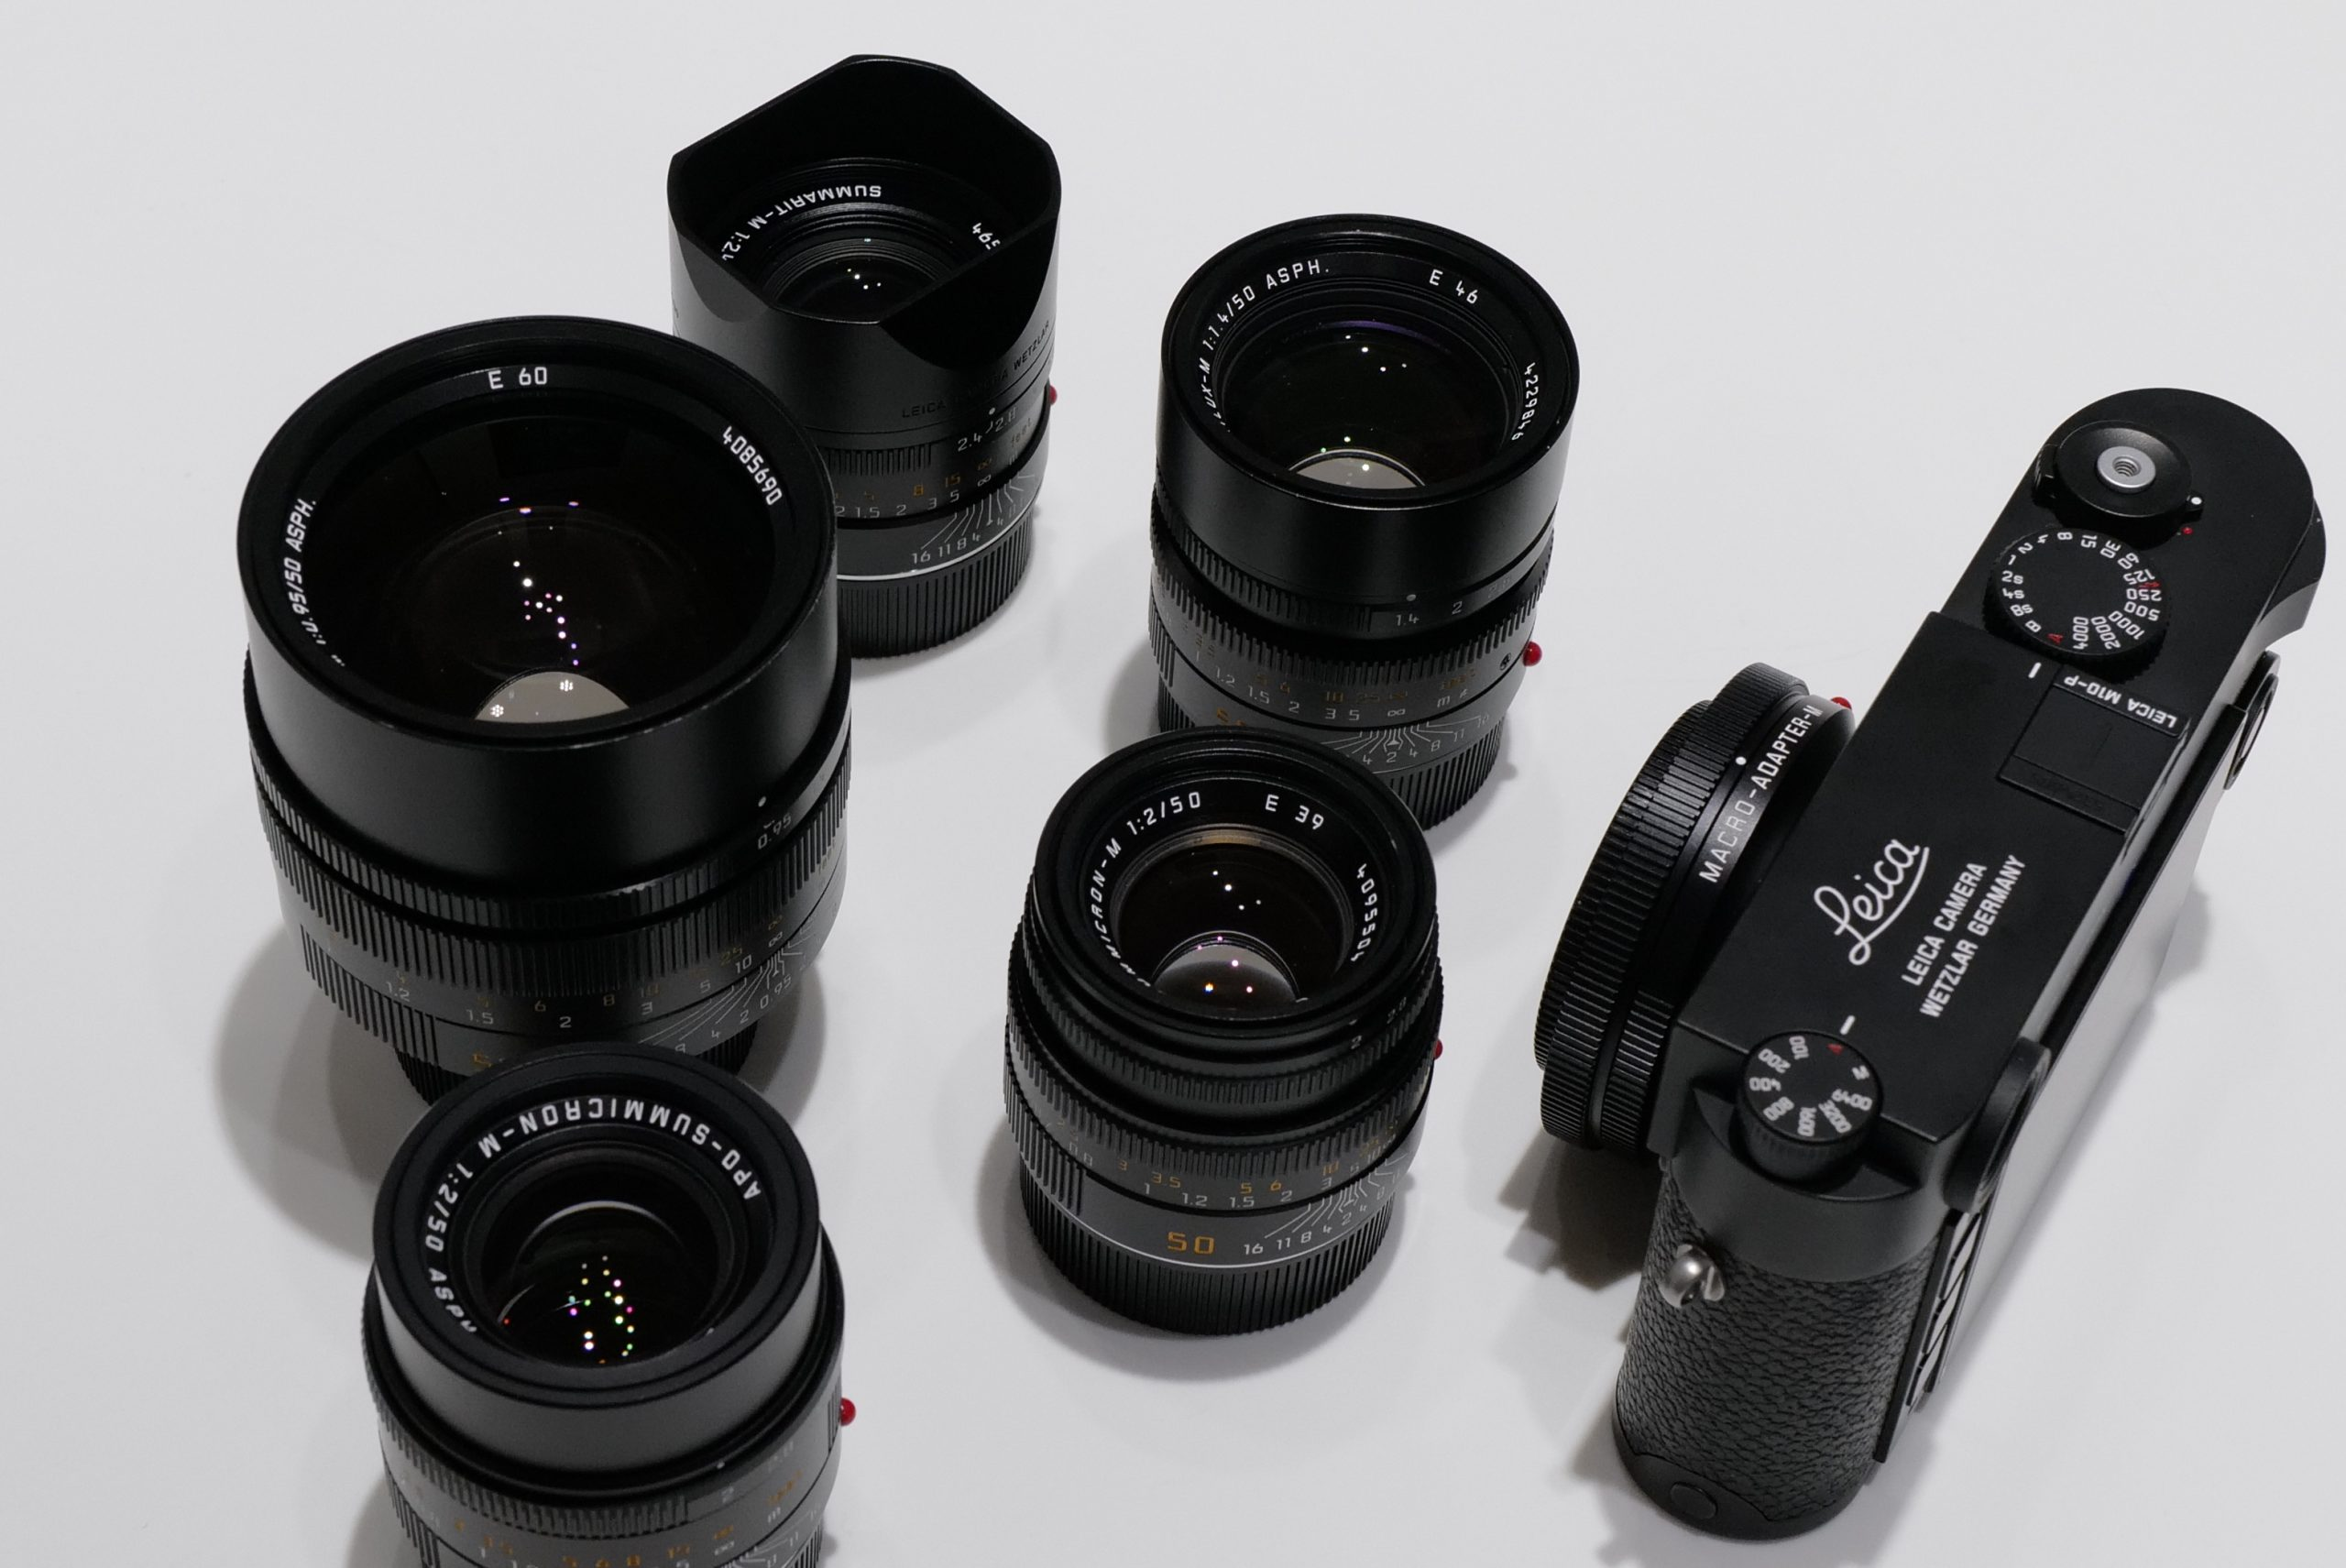 【Leica】How to Digital Leica マクロアダプターM Typ240編